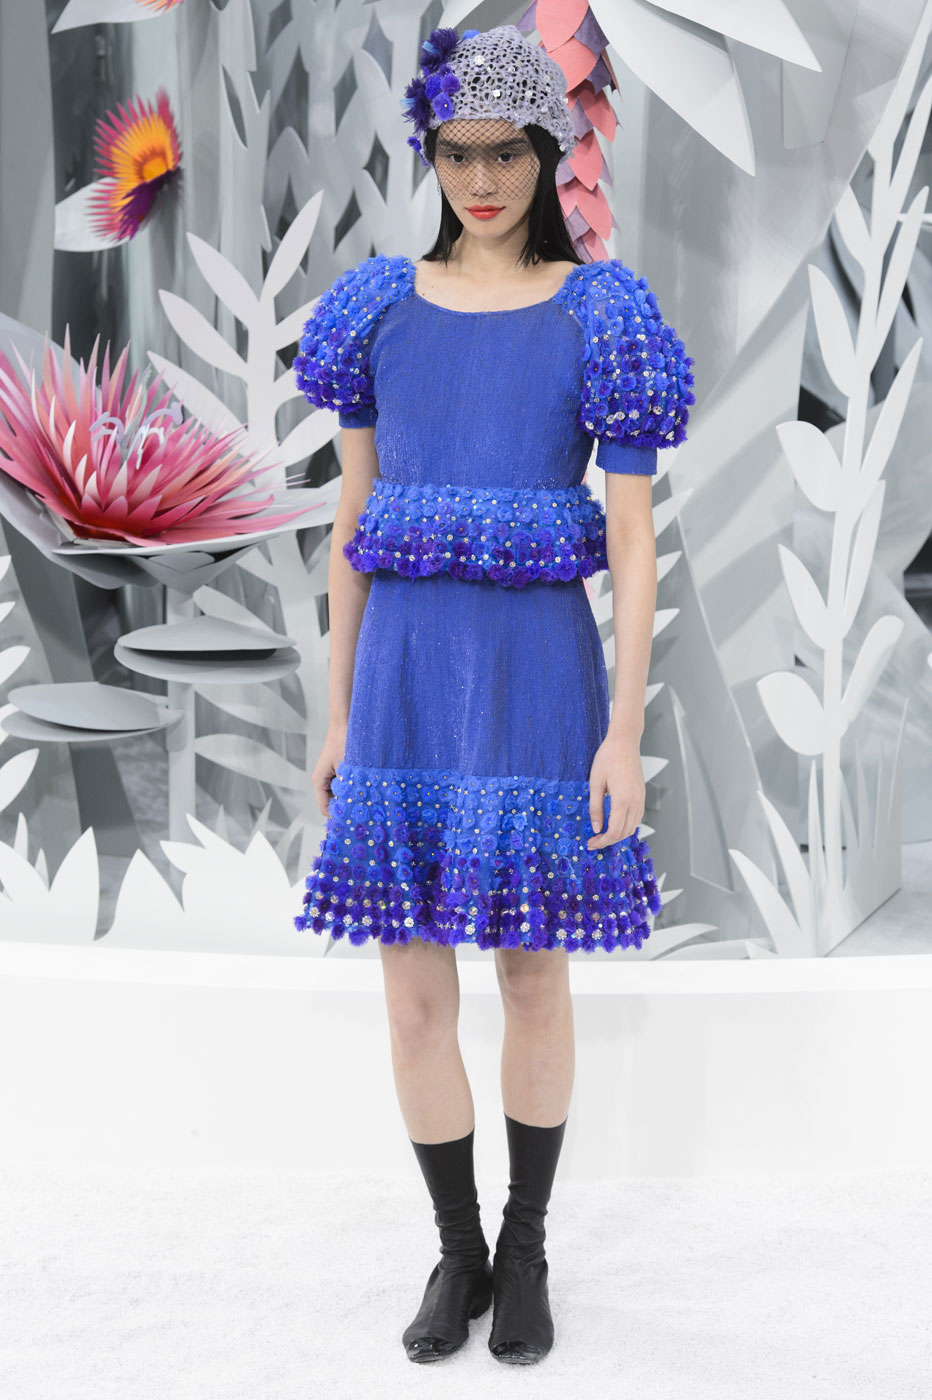 Chanel-fashion-runway-show-haute-couture-paris-spring-summer-2015-the-impression-088